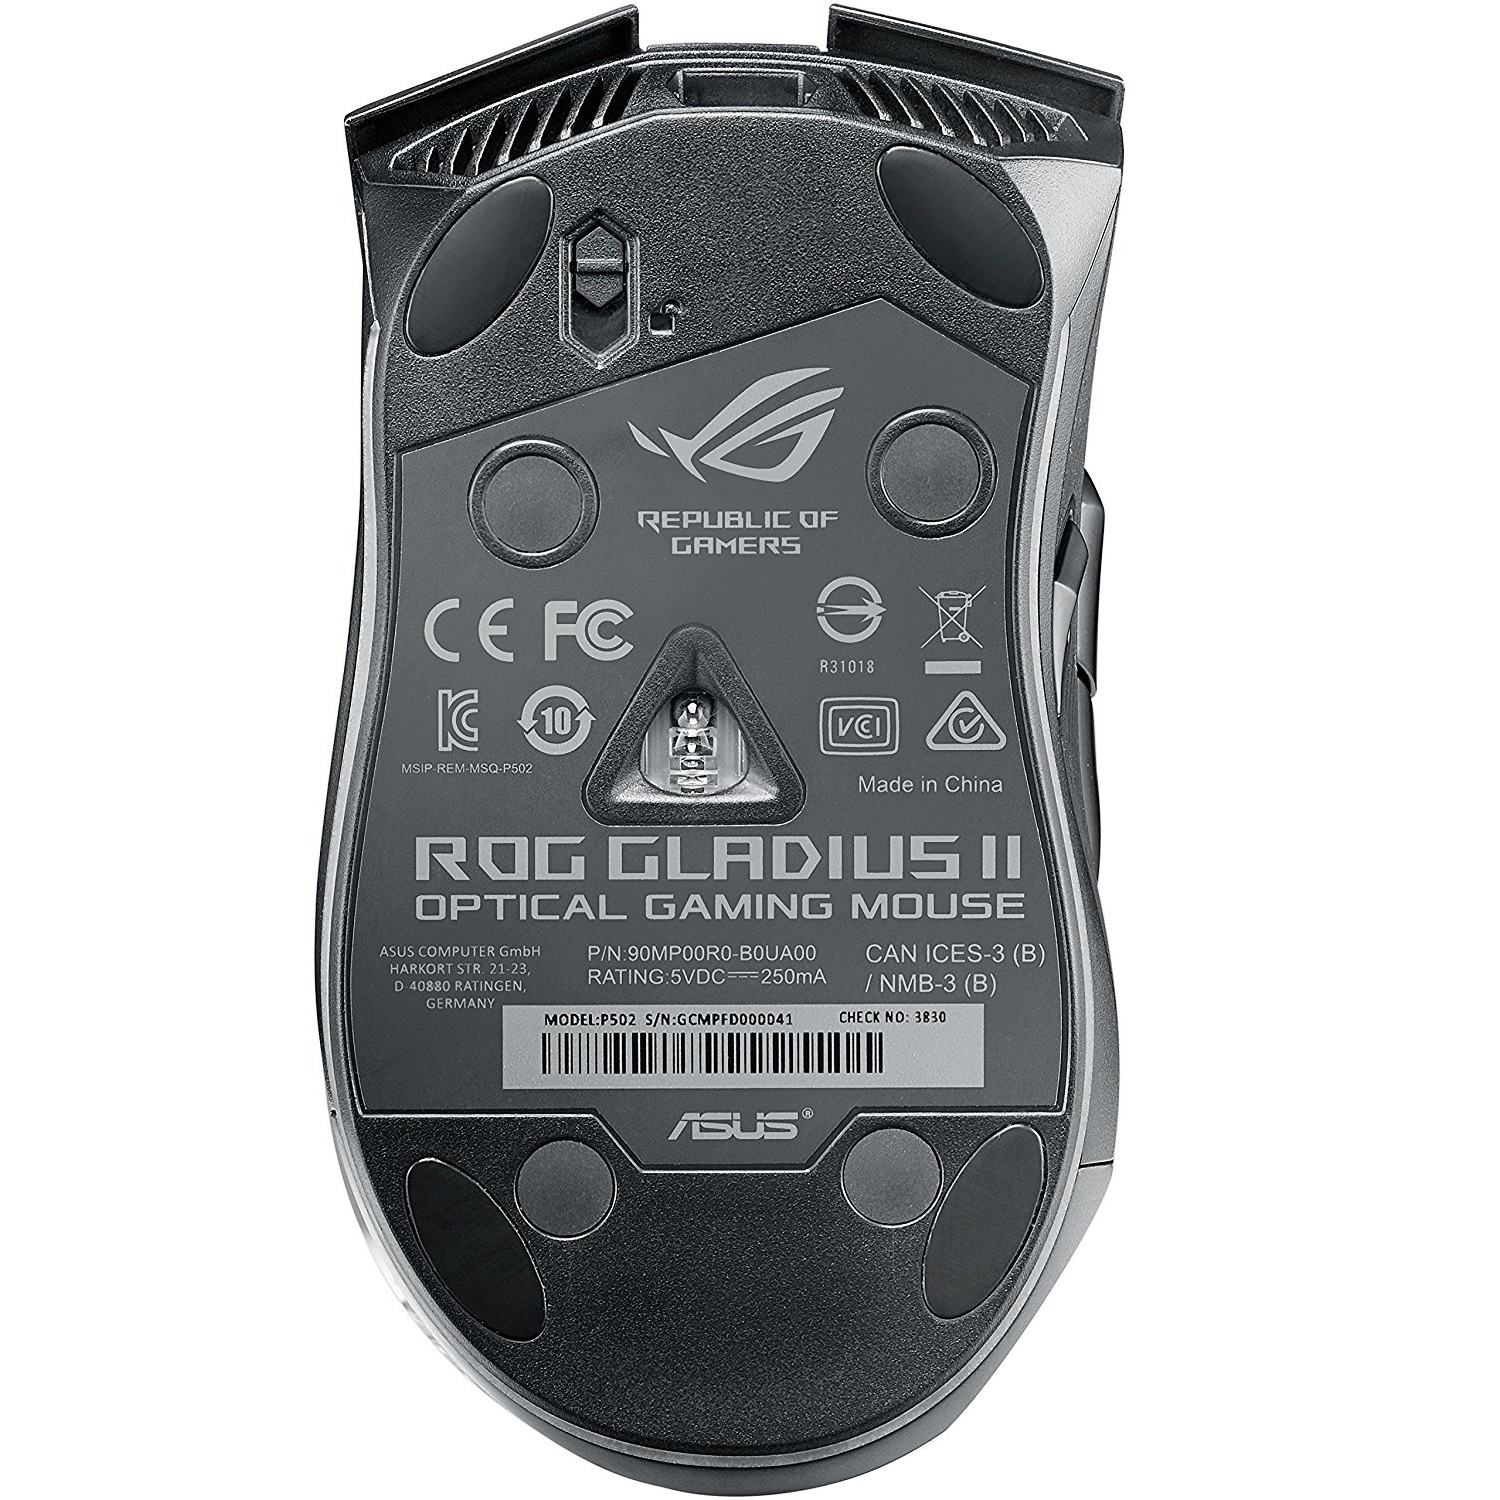 ASUS-ROG-Gladius-II-2-Aura-Sync-Wired-PNK-Wireless-Gaming-Mouse-All-Models-AW Indexbild 14